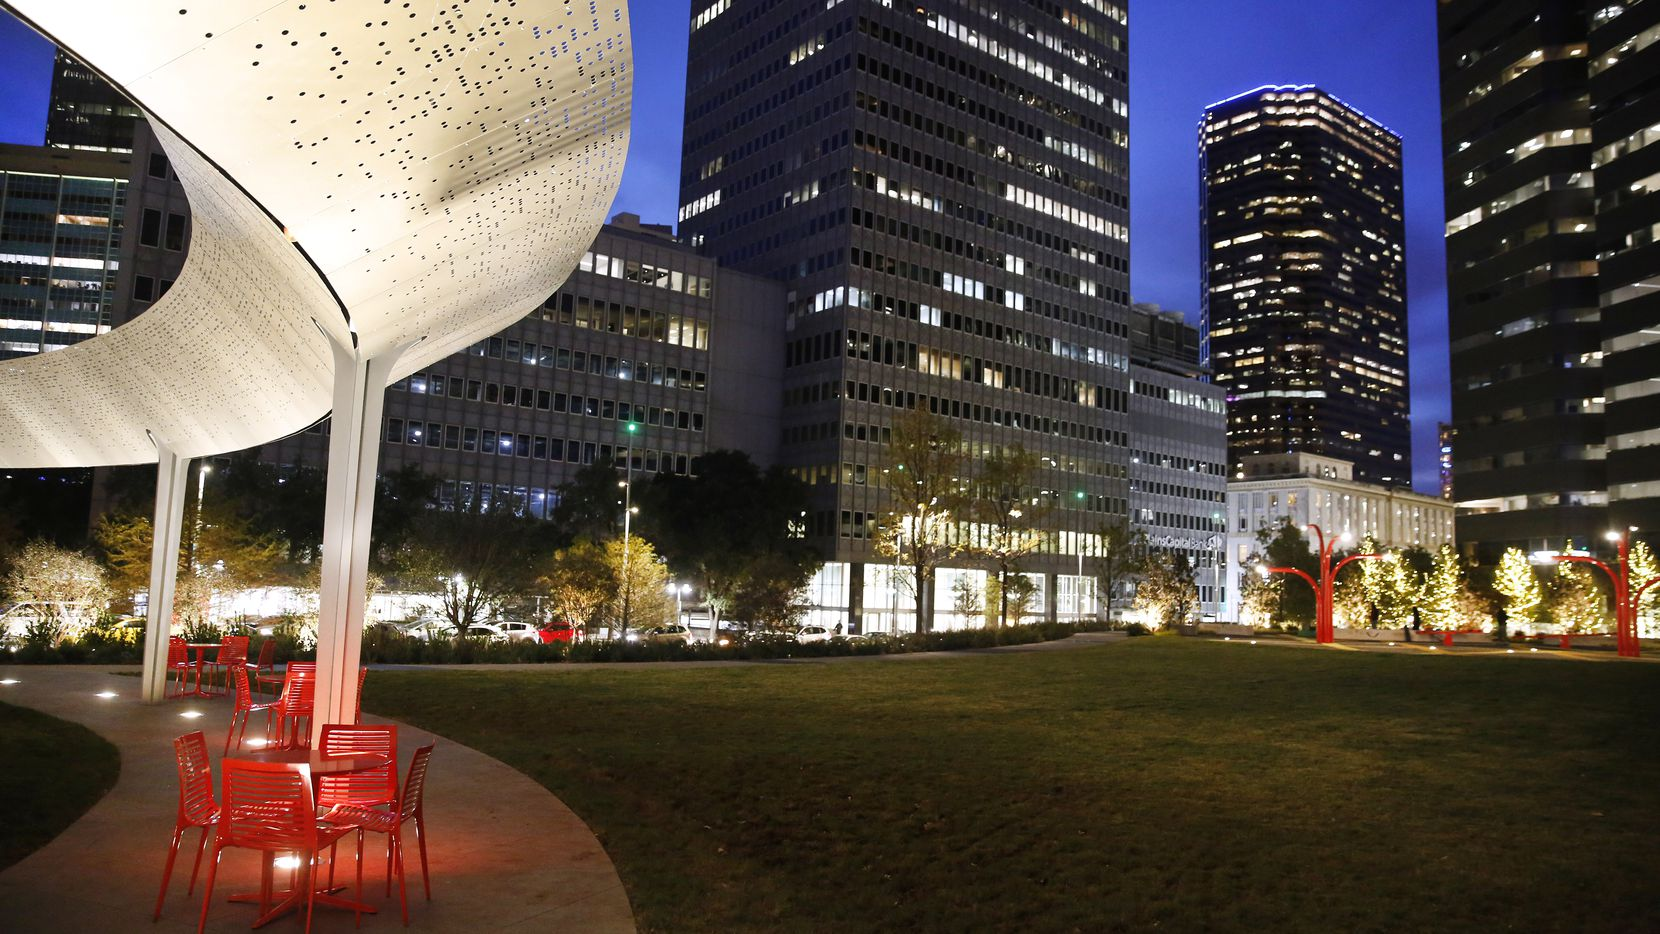 One of the most unique elements in Pacific Plaza is The Pavilion (left), a floating 95-by-138-foot ovoid structure of stainless steel. Morse Code Signatures of every stop along the Texas and Pacific Railroad between El Paso and New Orleans are cut out of the steel ring.